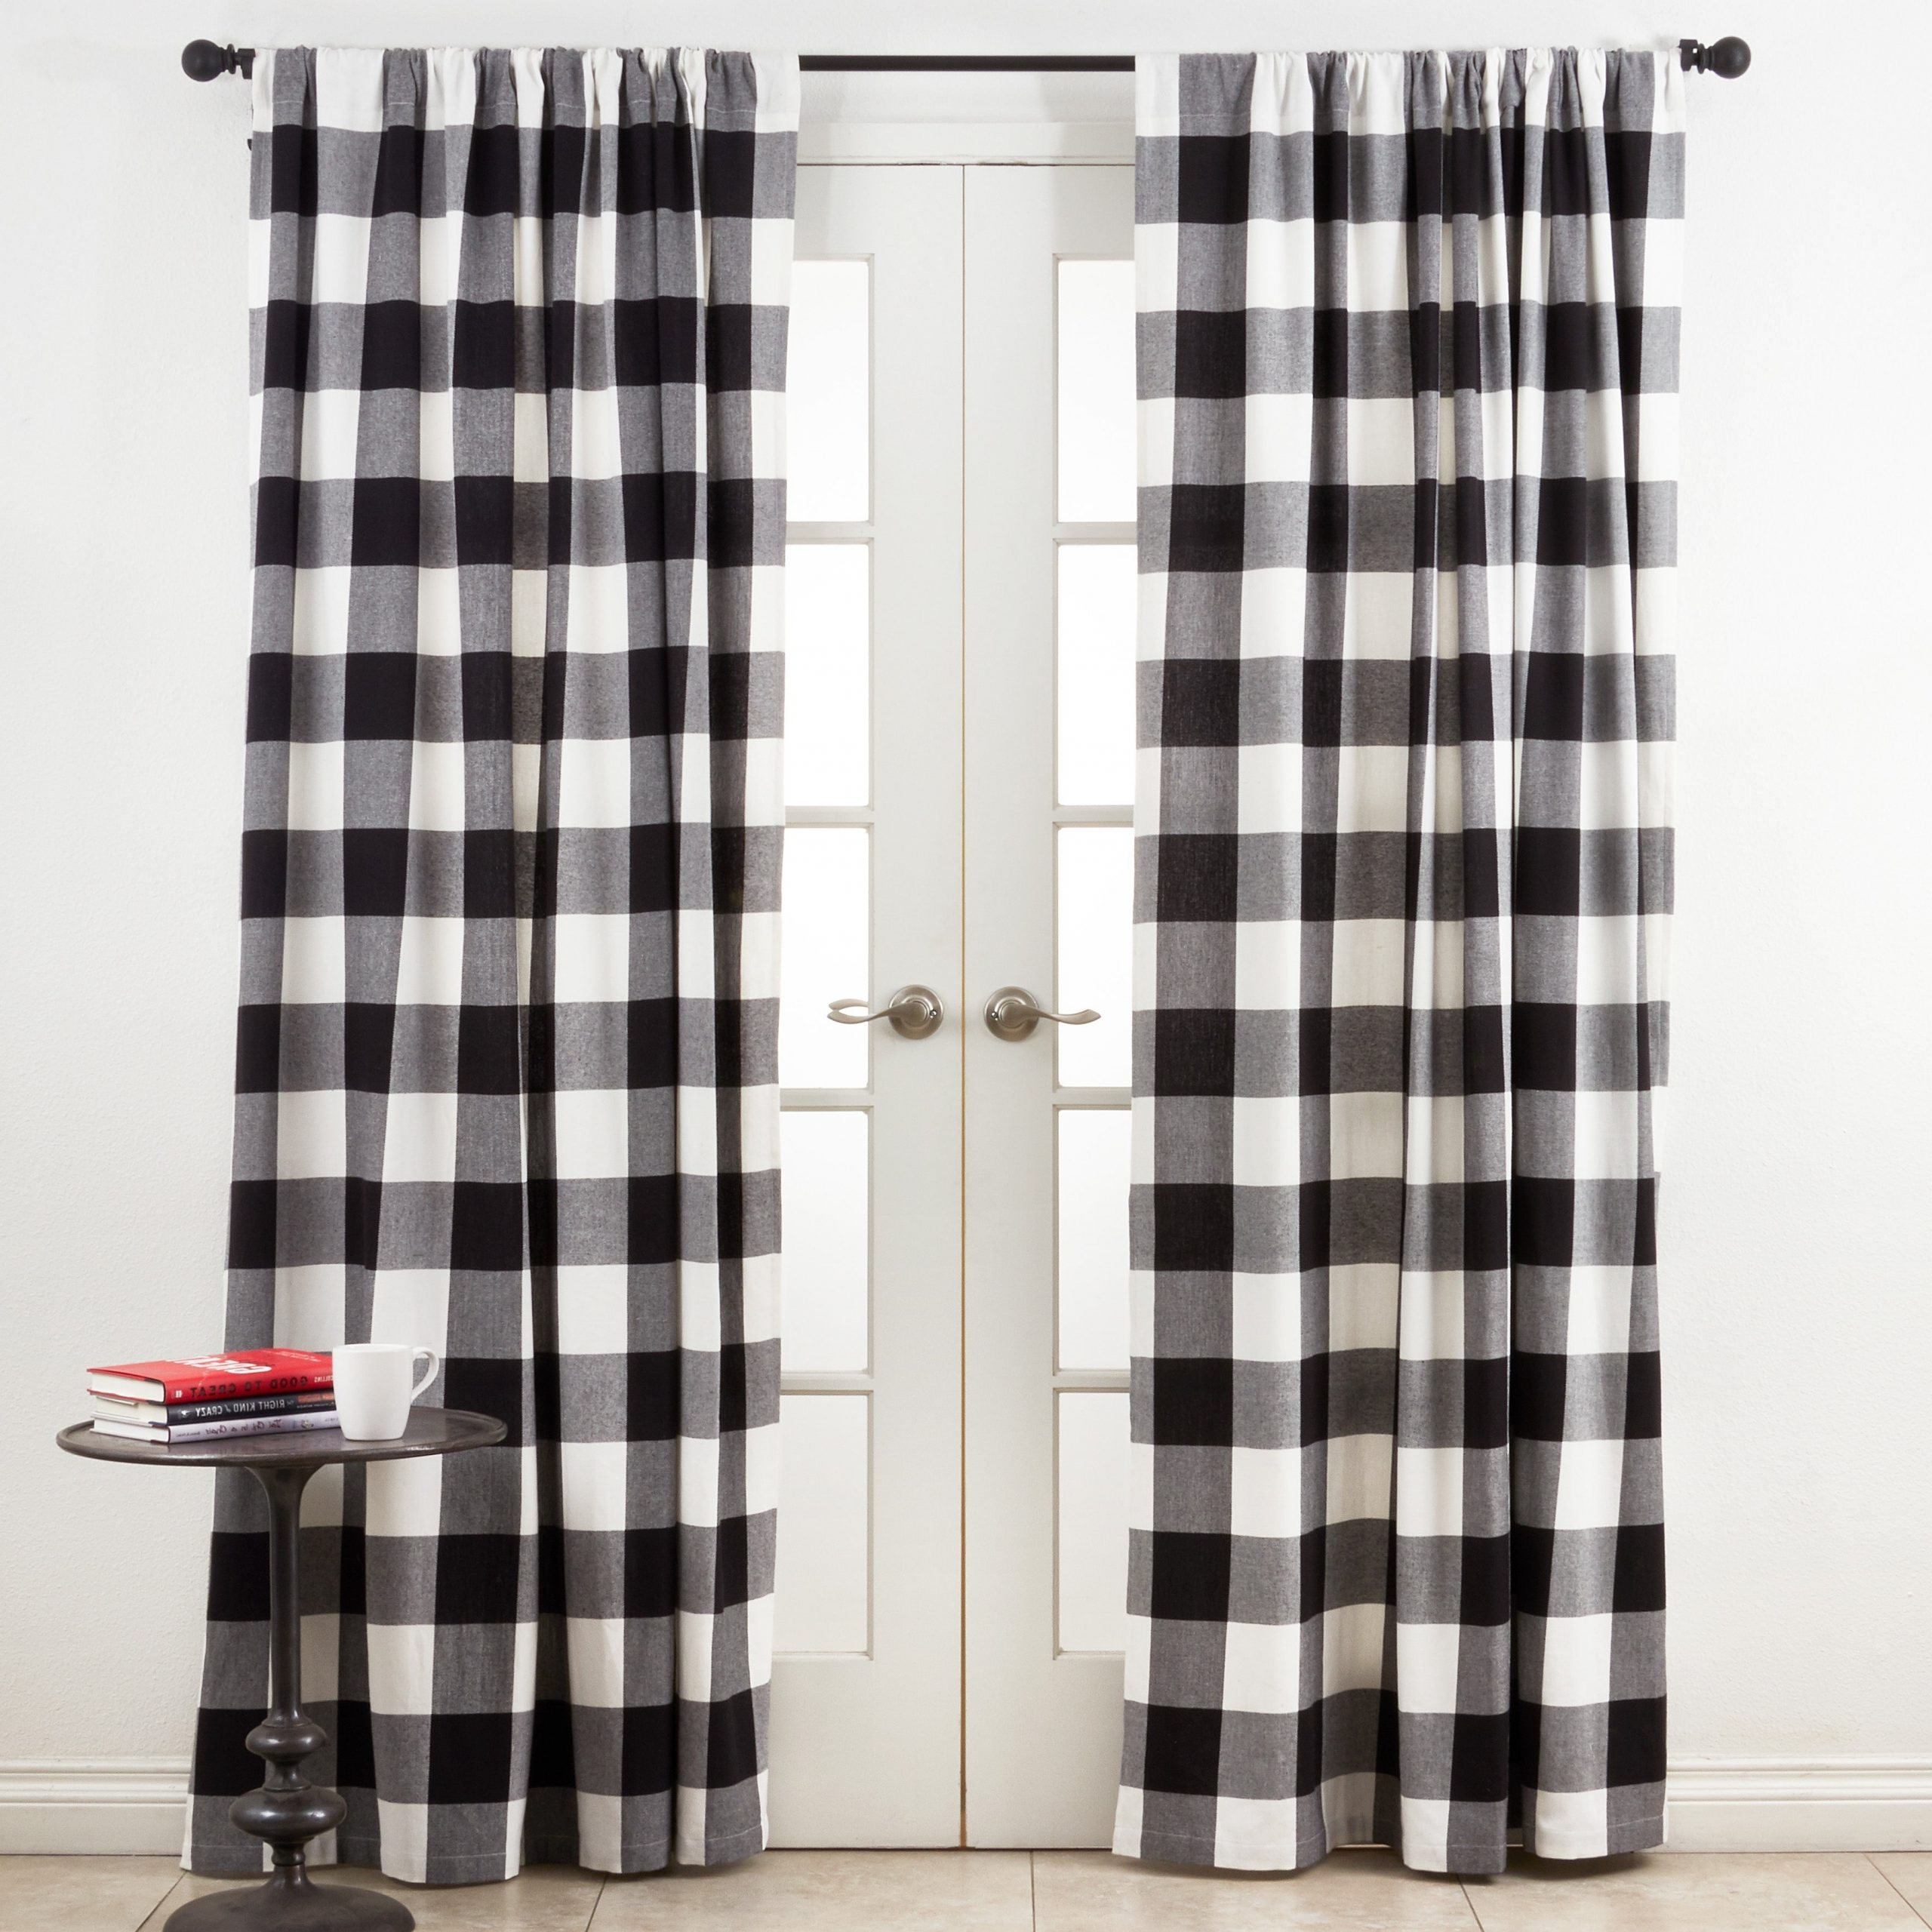 Cotton Buffalo Plaid Curtains Pertaining To Well Known Grandin Curtain Valances In Black (View 15 of 20)